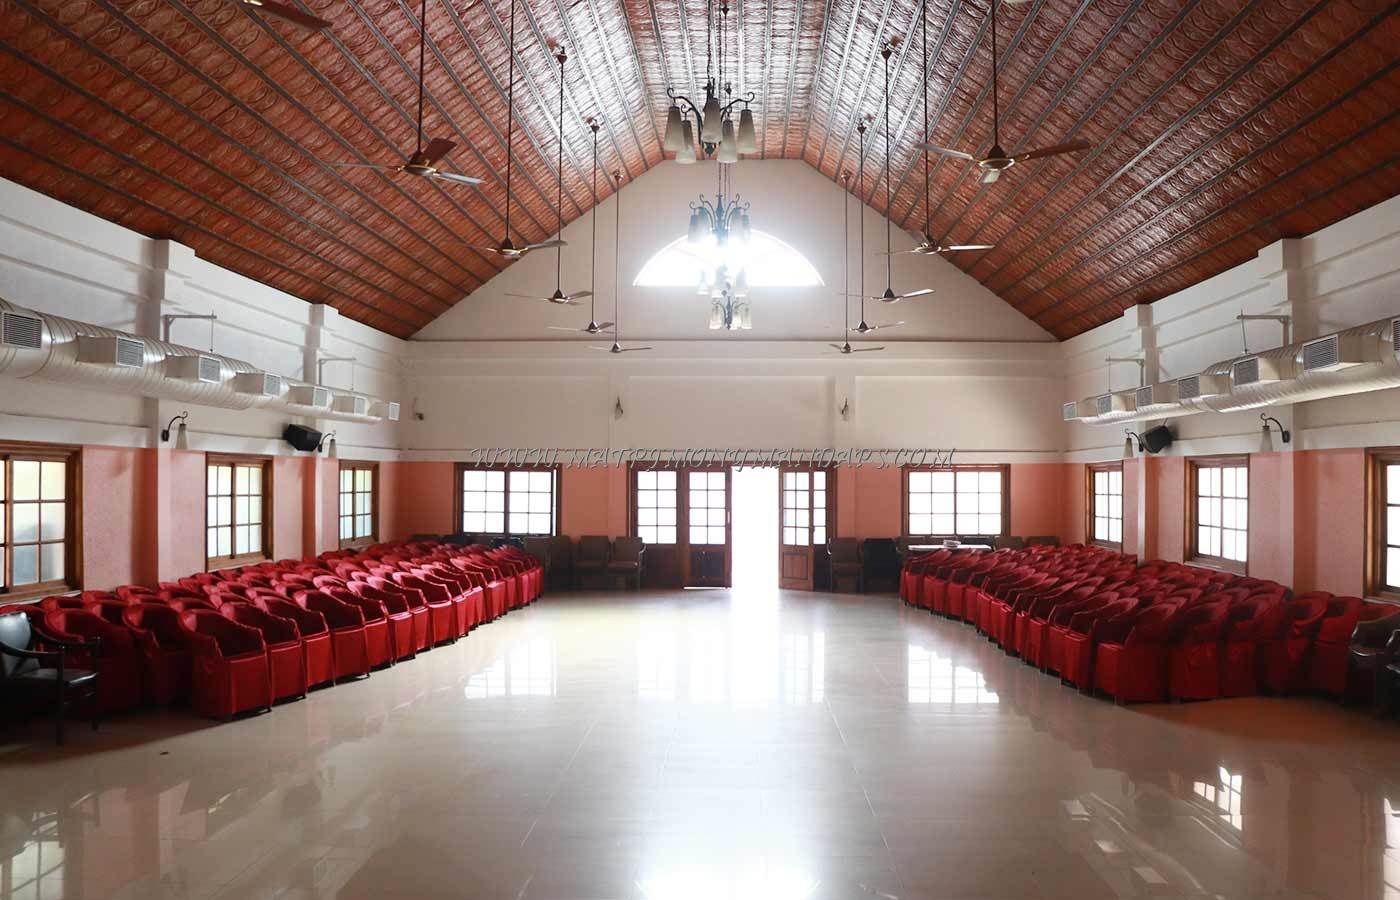 Find the availability of the Hotel Indraprastha Auditorium (A/C) in Palakkad Town, Palakkad and avail special offers